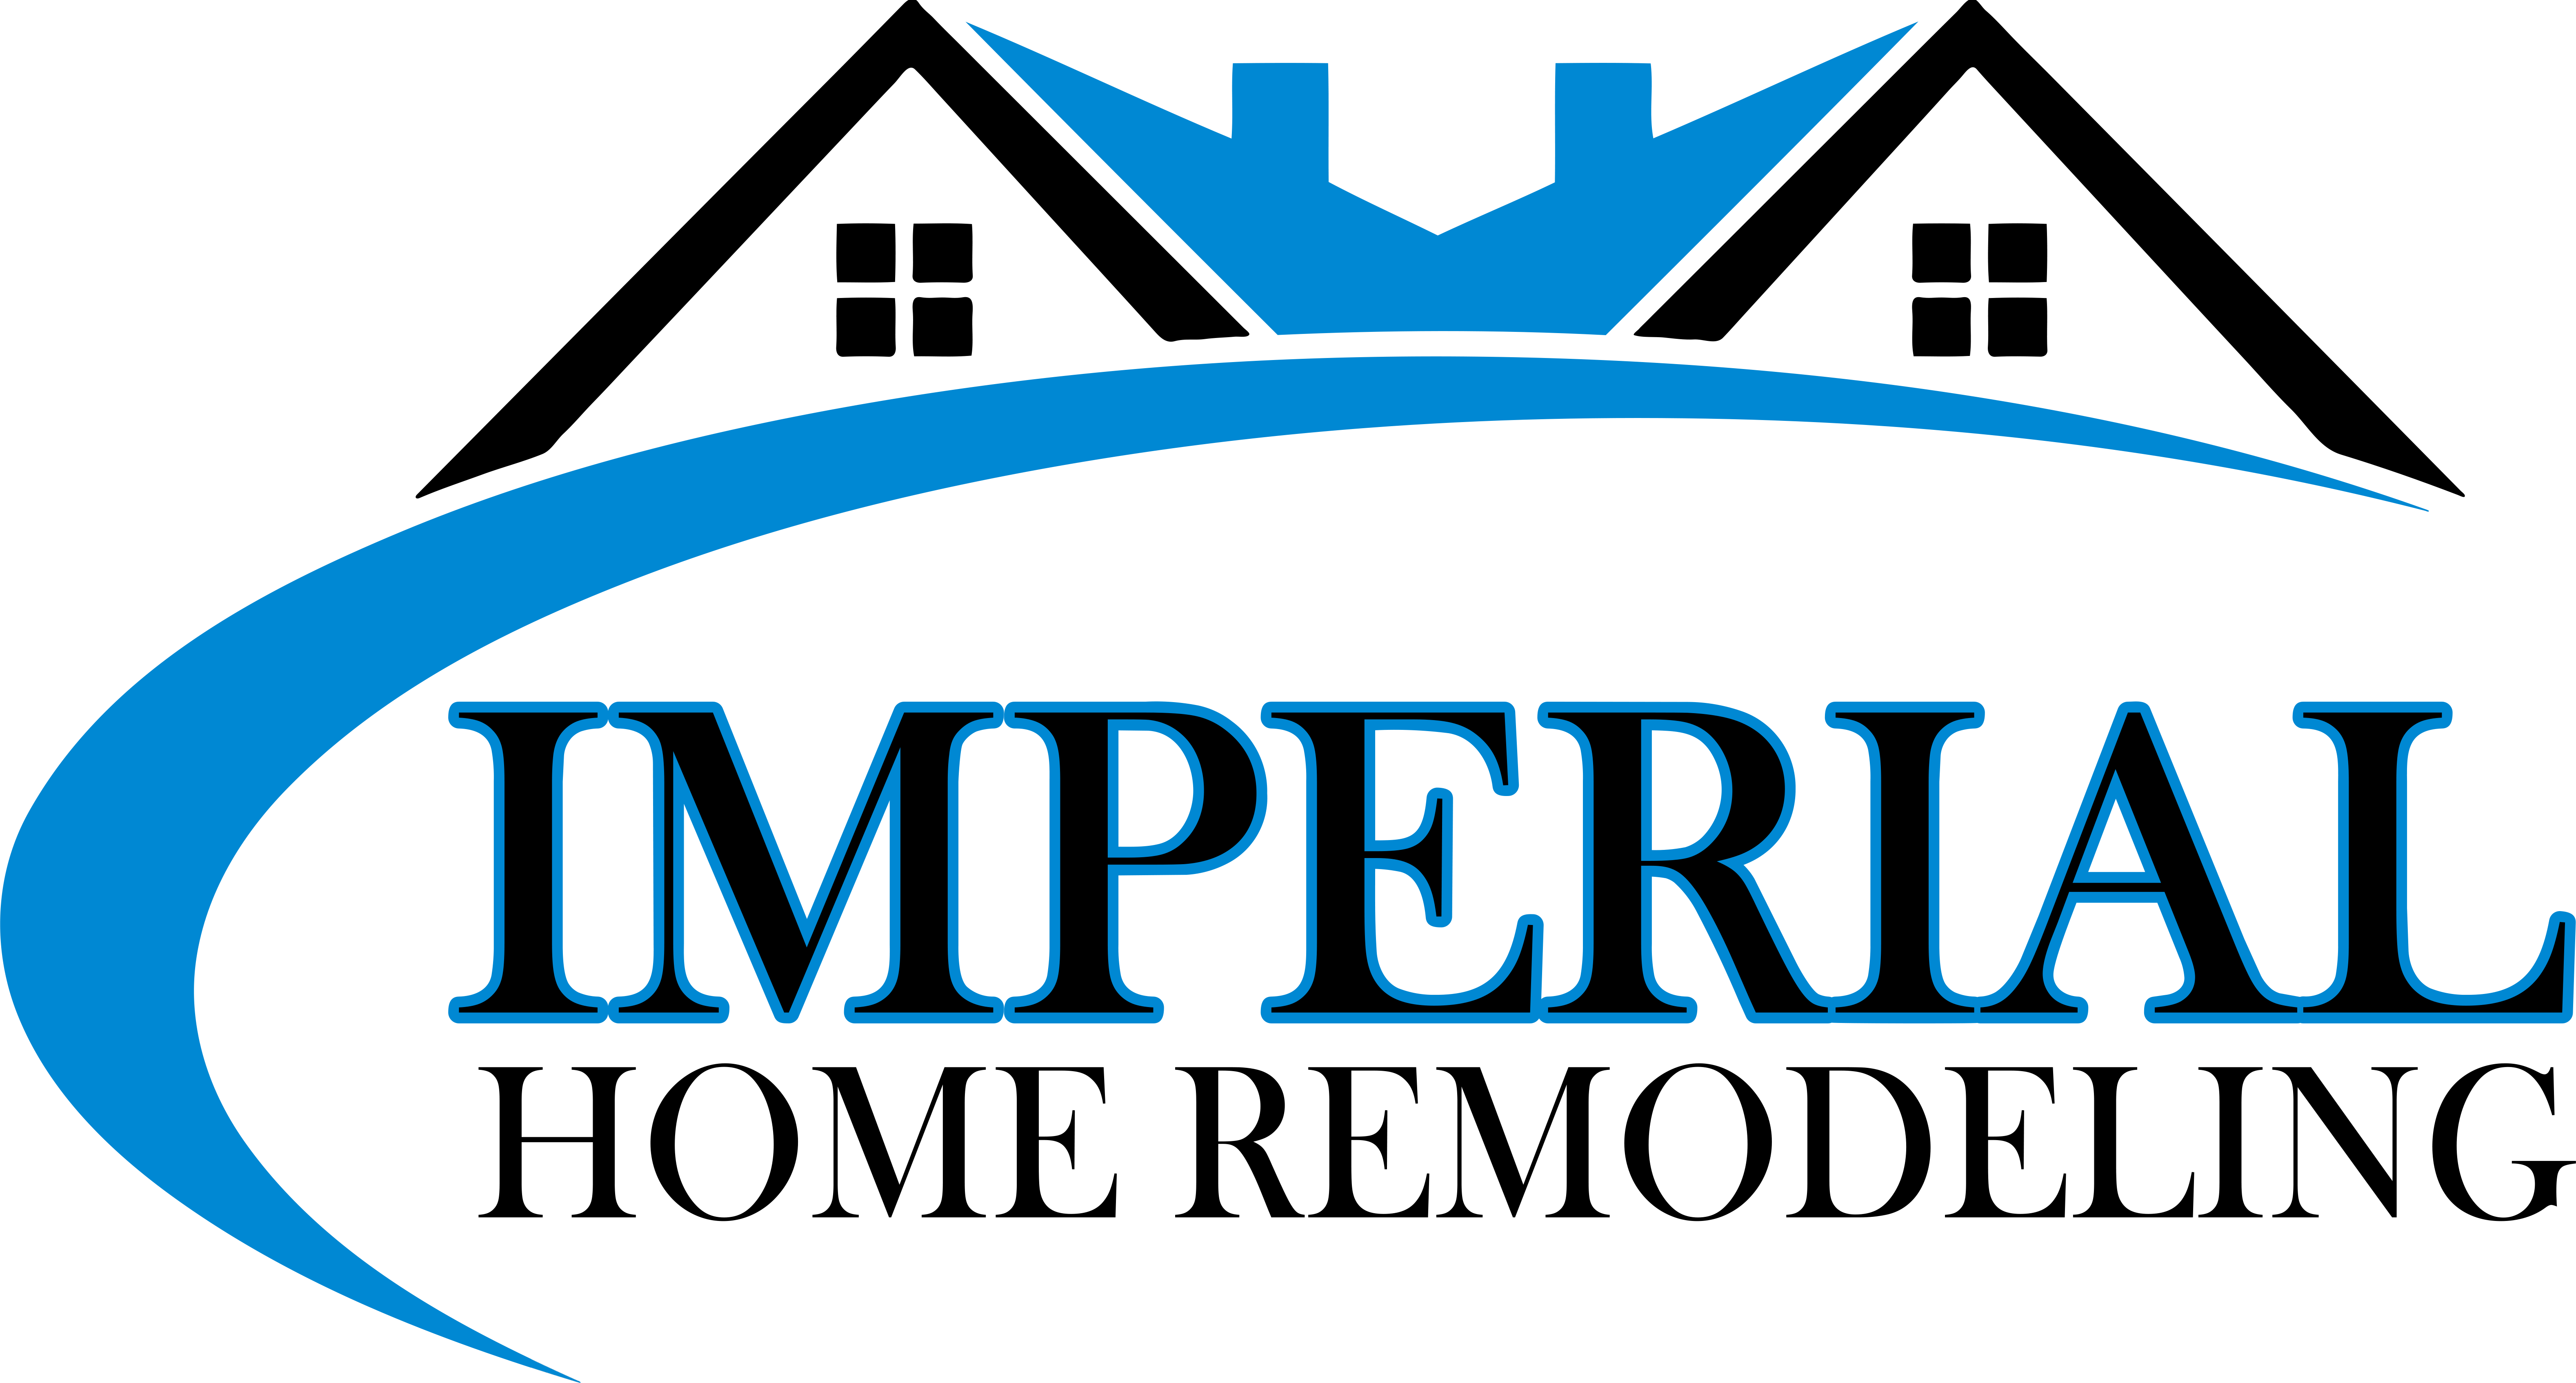 House remodeling clipart picture transparent library Imperial Remodeling, Home Renovations Clip Art - Timhunter Design picture transparent library